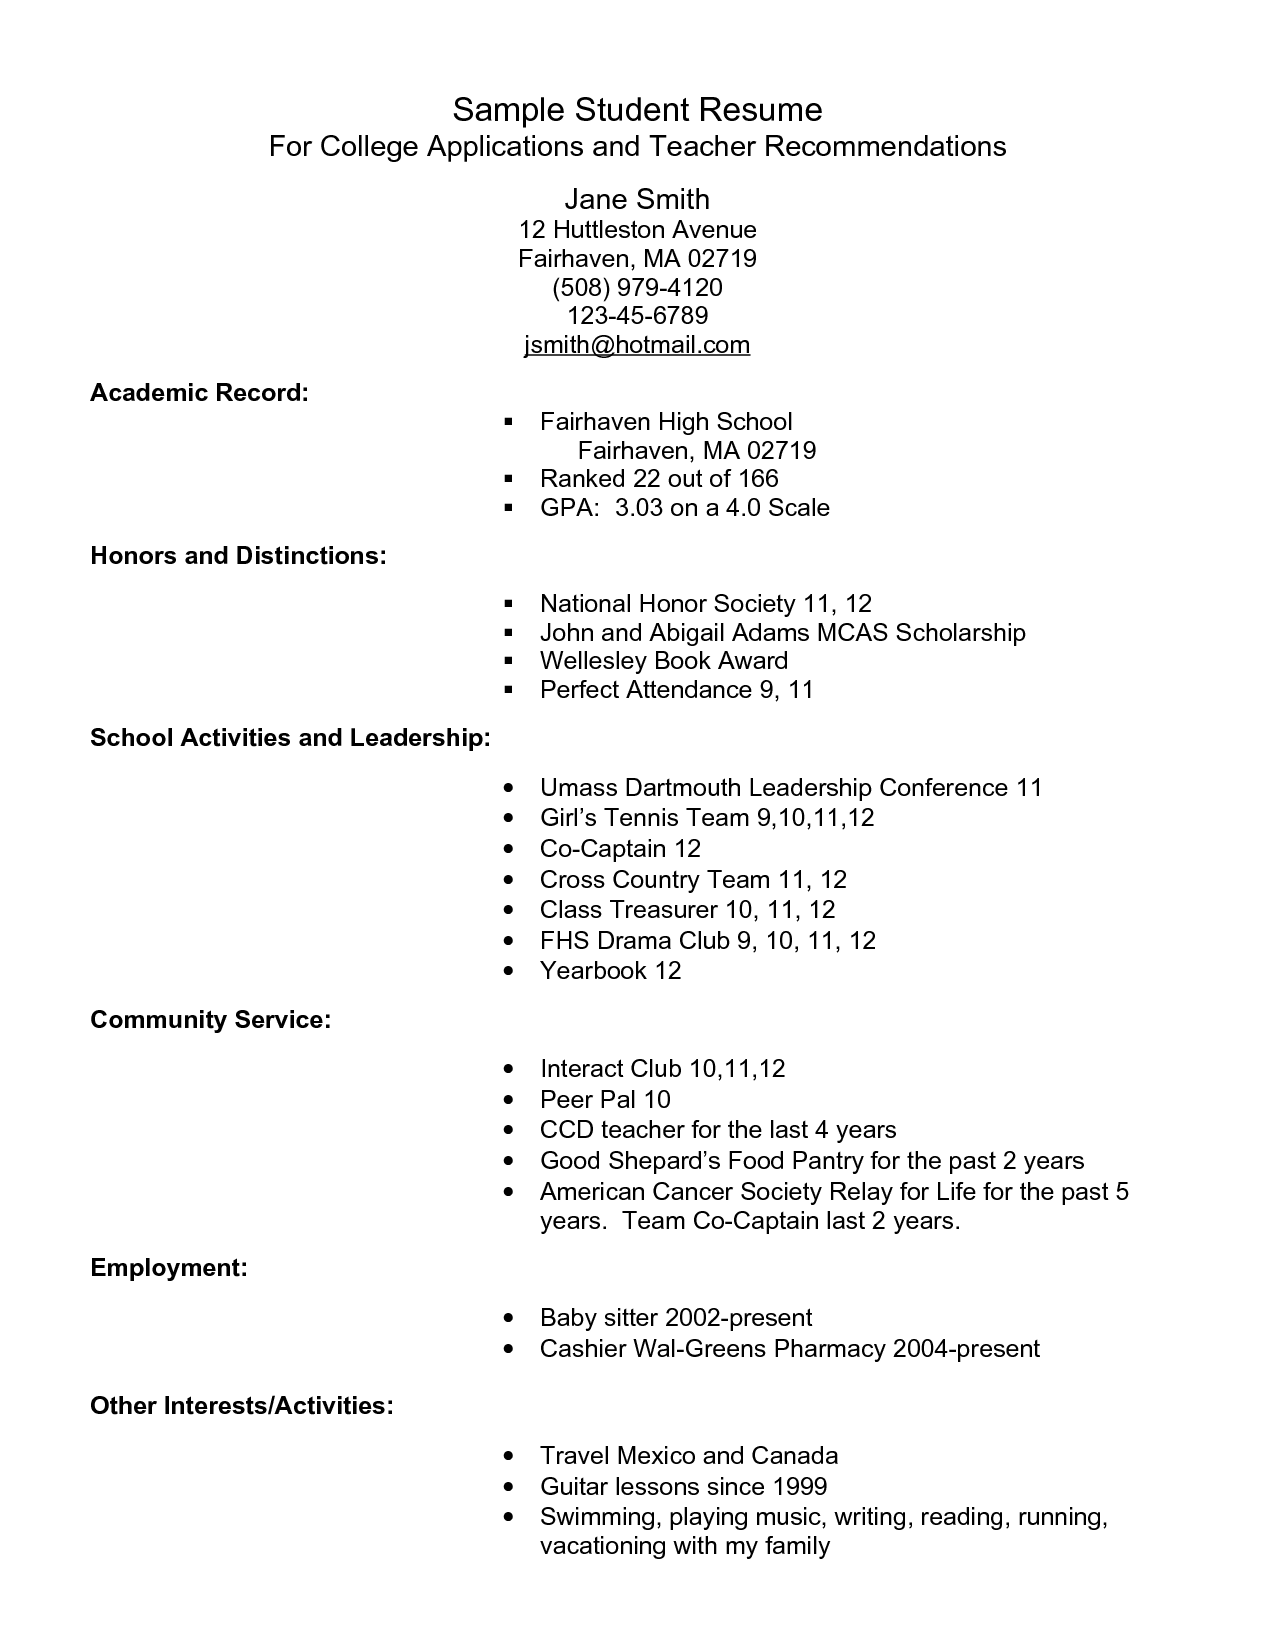 High School Student Resume Template Example Resume For High School Students For College Applications